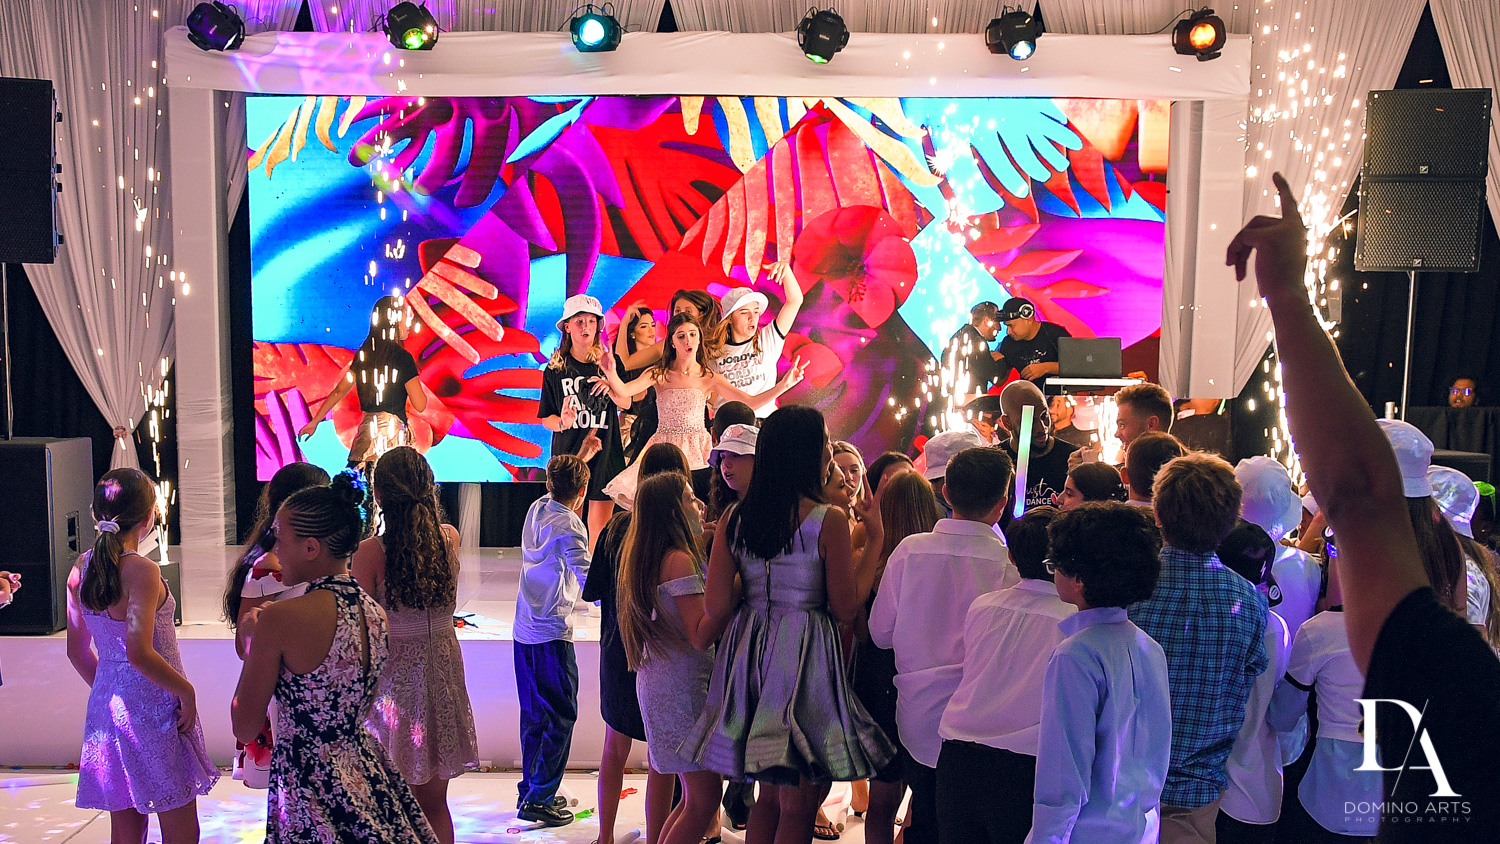 dancing on stage at Masquerade Ball Bat Mitzvah at Ritz Carlton Fort Lauderdale by Domino Arts Photography